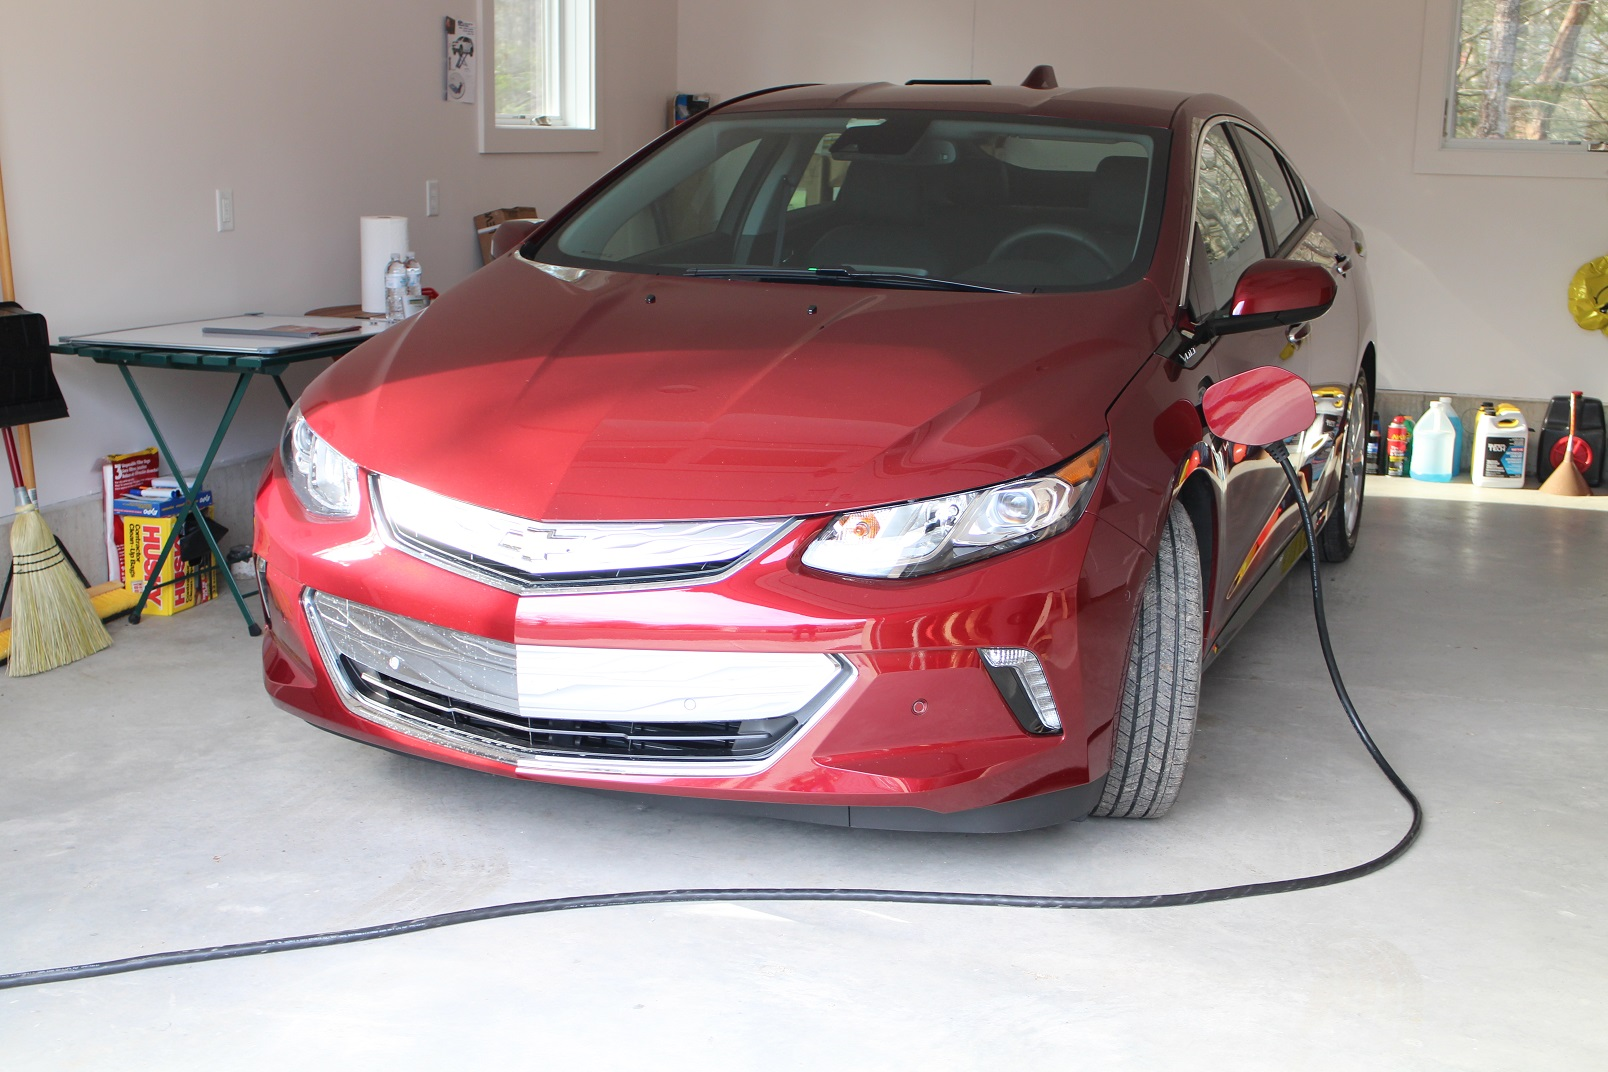 1101542 2016 Chevrolet Volt Real World Review Over Cold Weekend additionally 7 Week Old Kitten Part 2 100539553 together with P2 together with 100539553 additionally  on 100539553